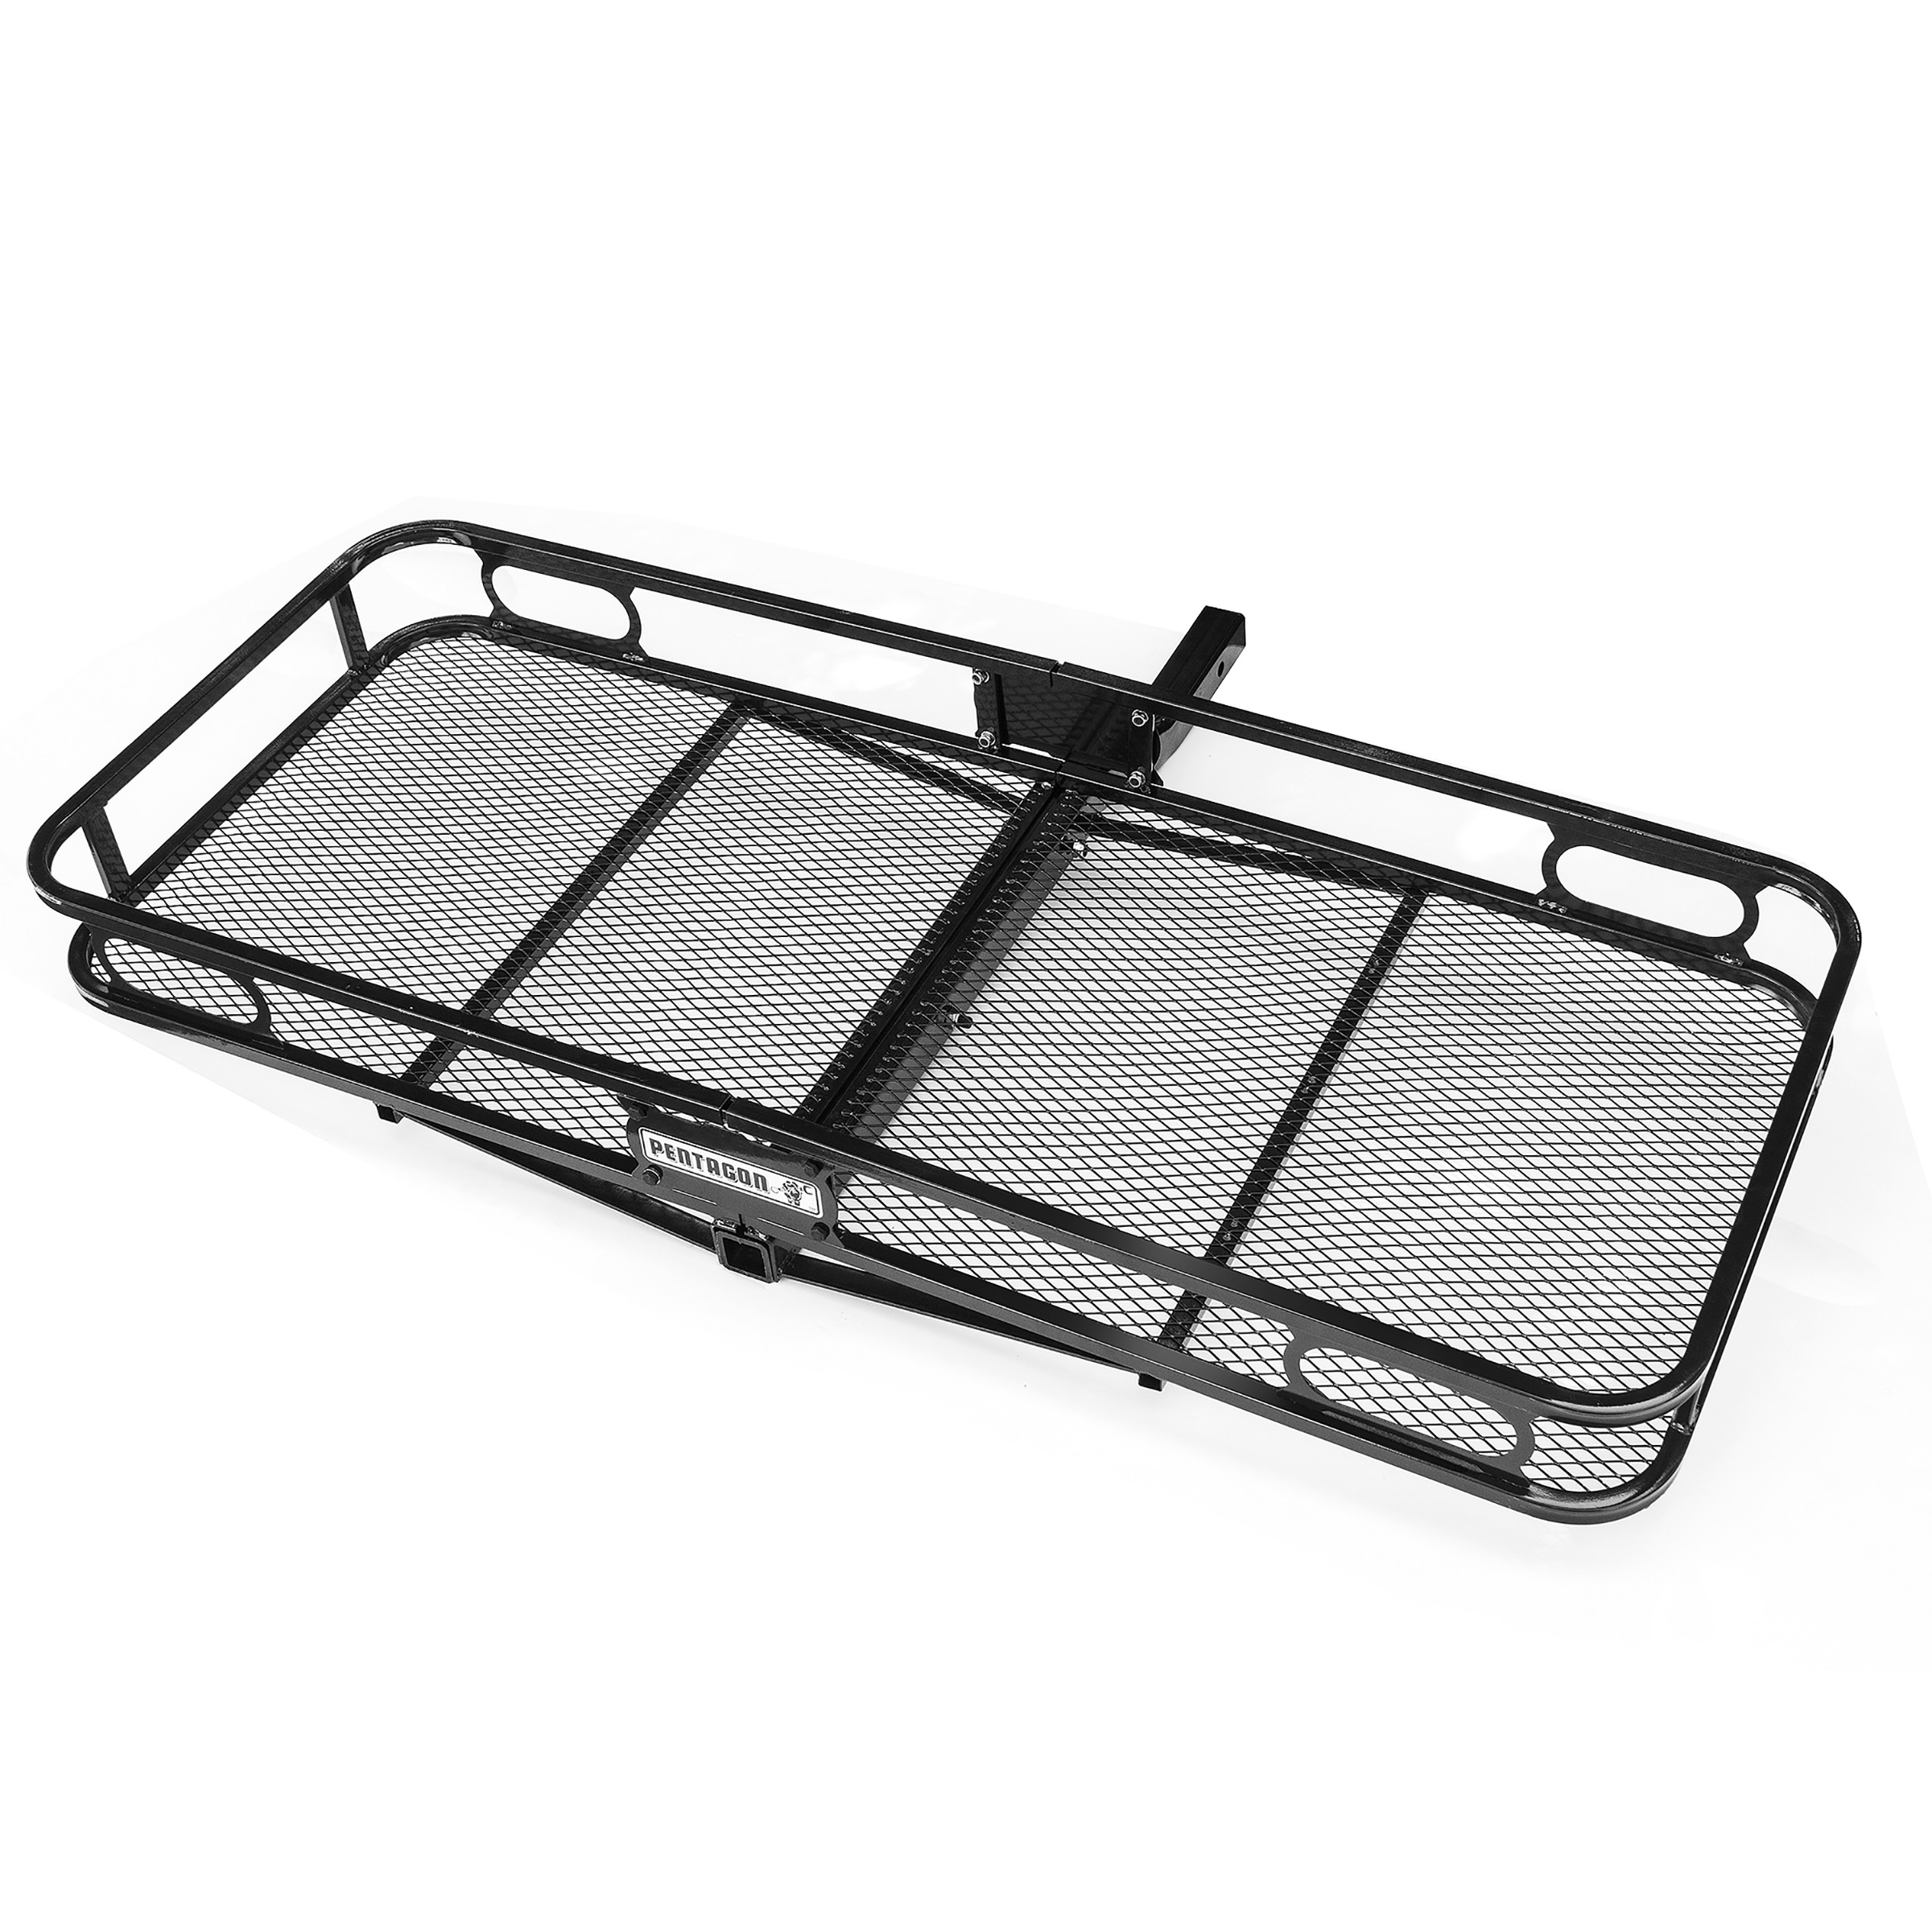 Hitch-Mount Luggage Rack at Walmart